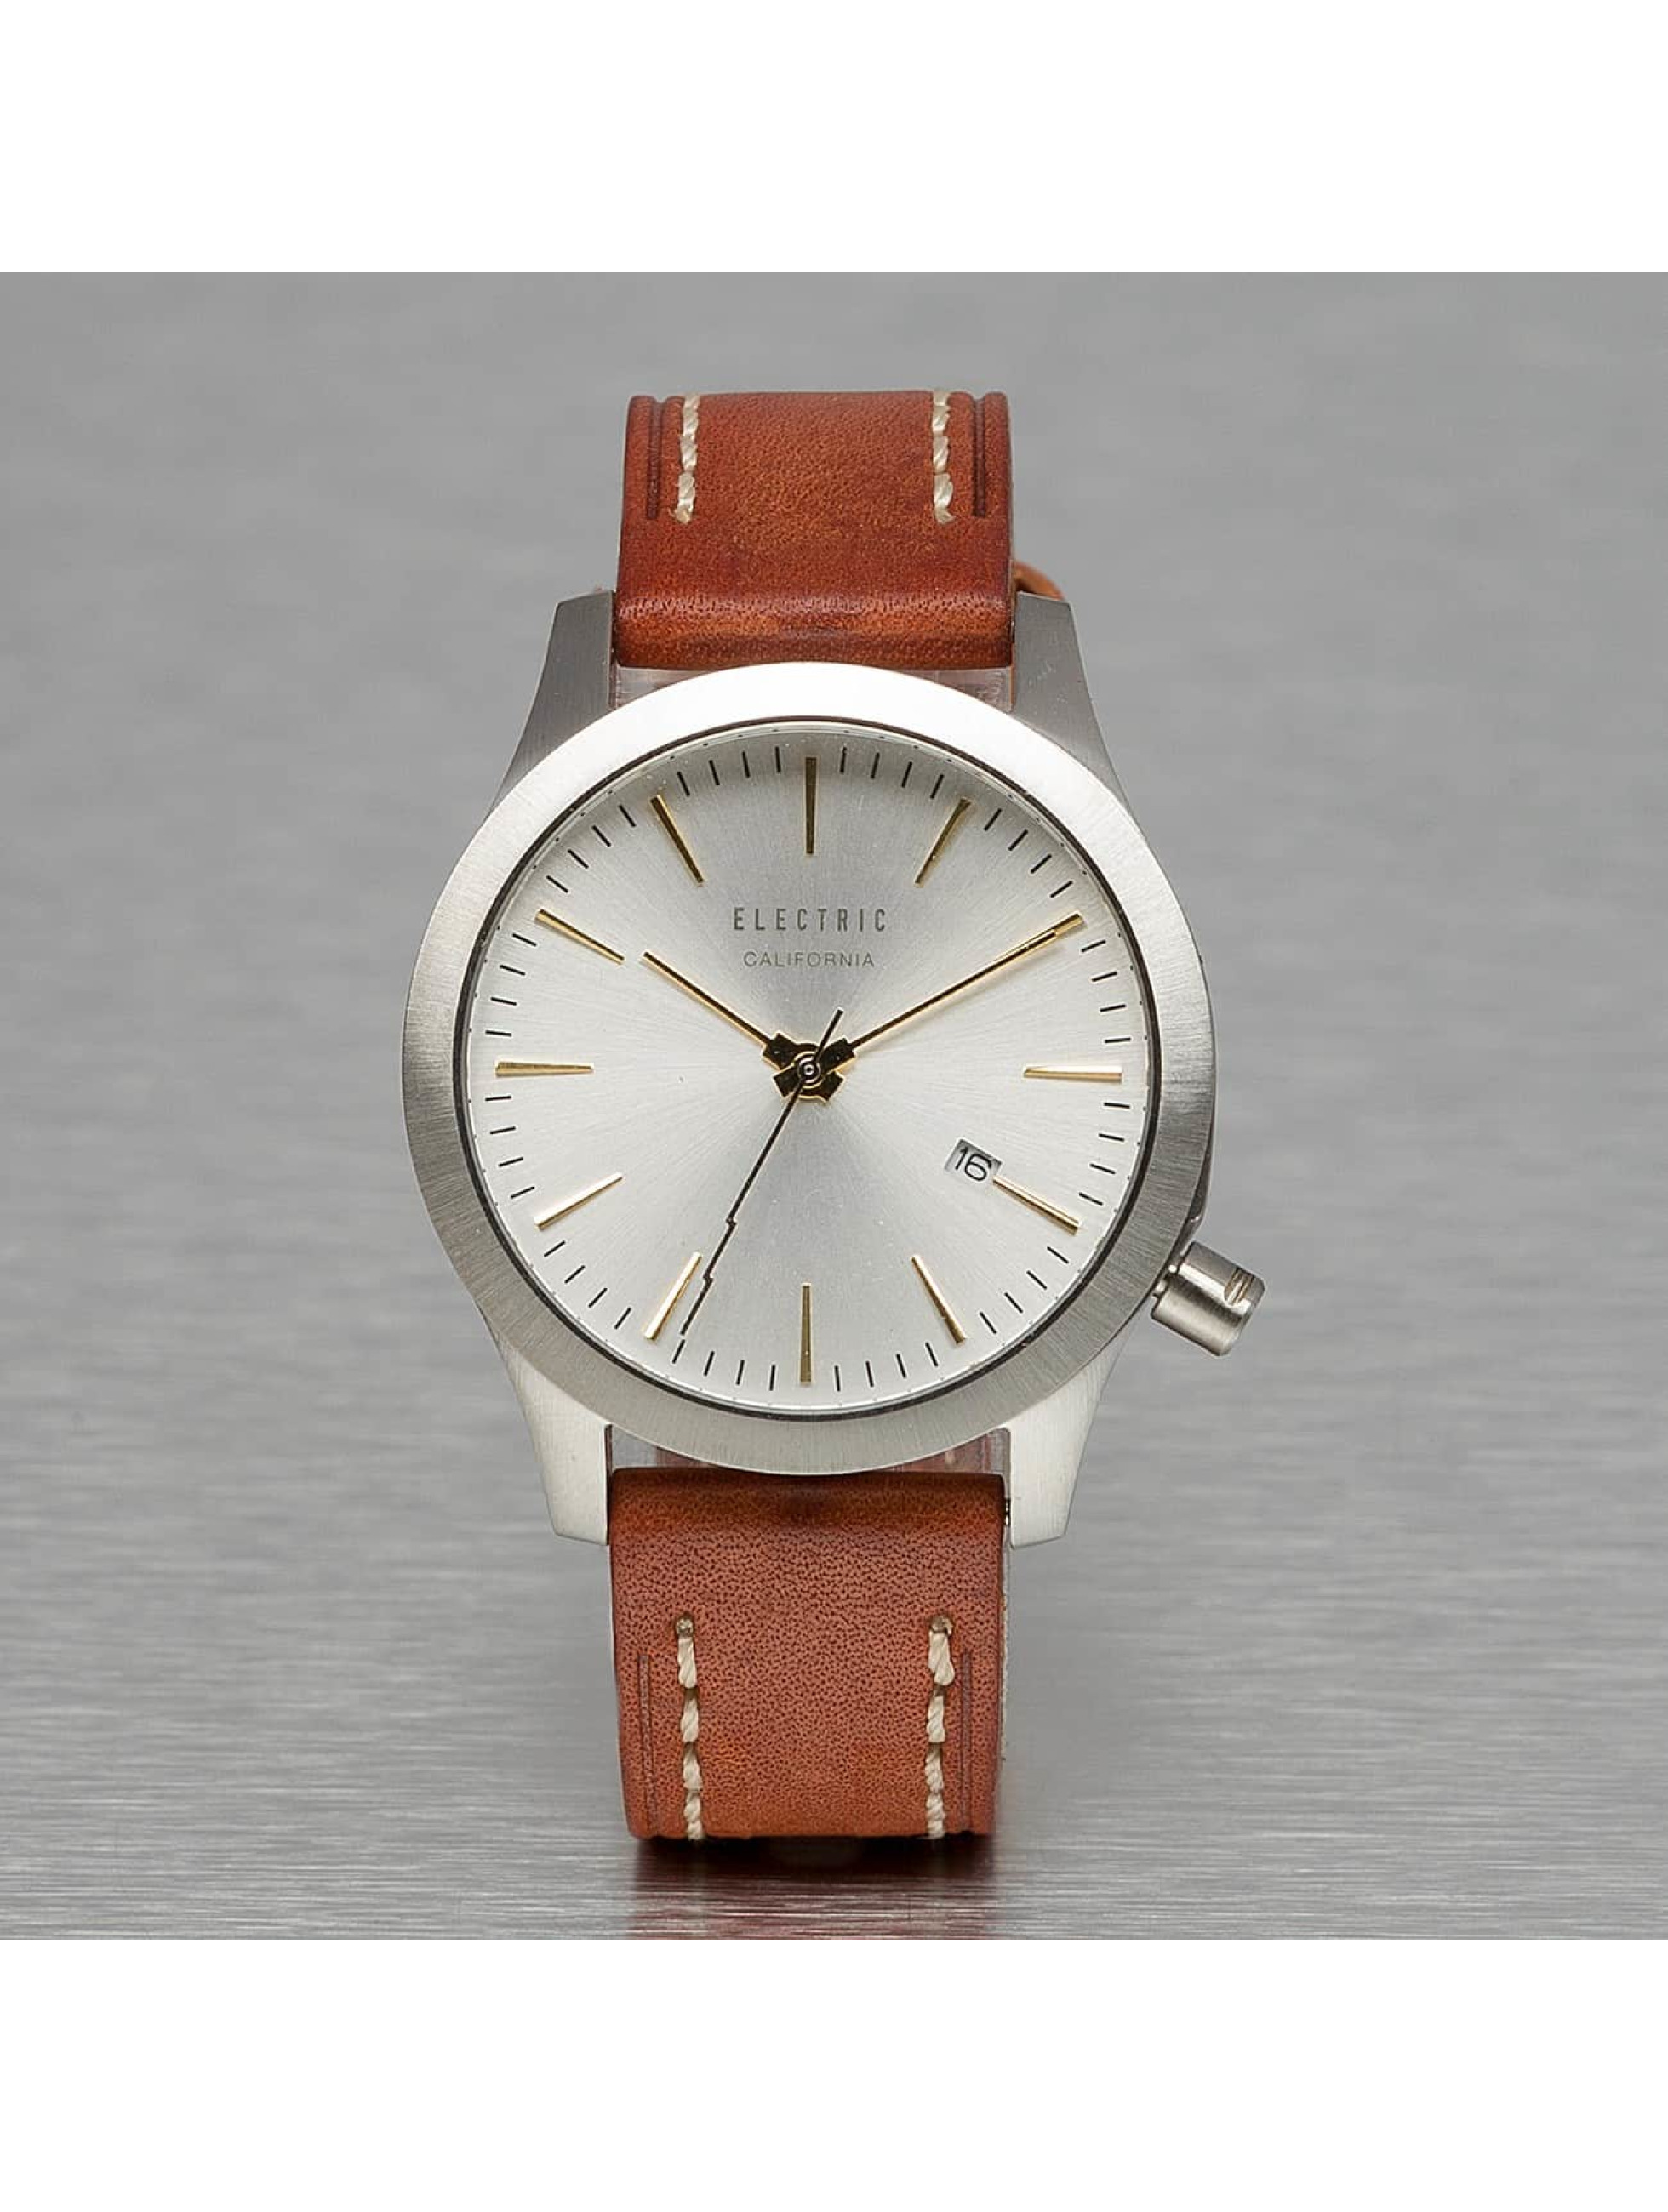 Electric Männer,Frauen Uhr FW03 Leather in braun